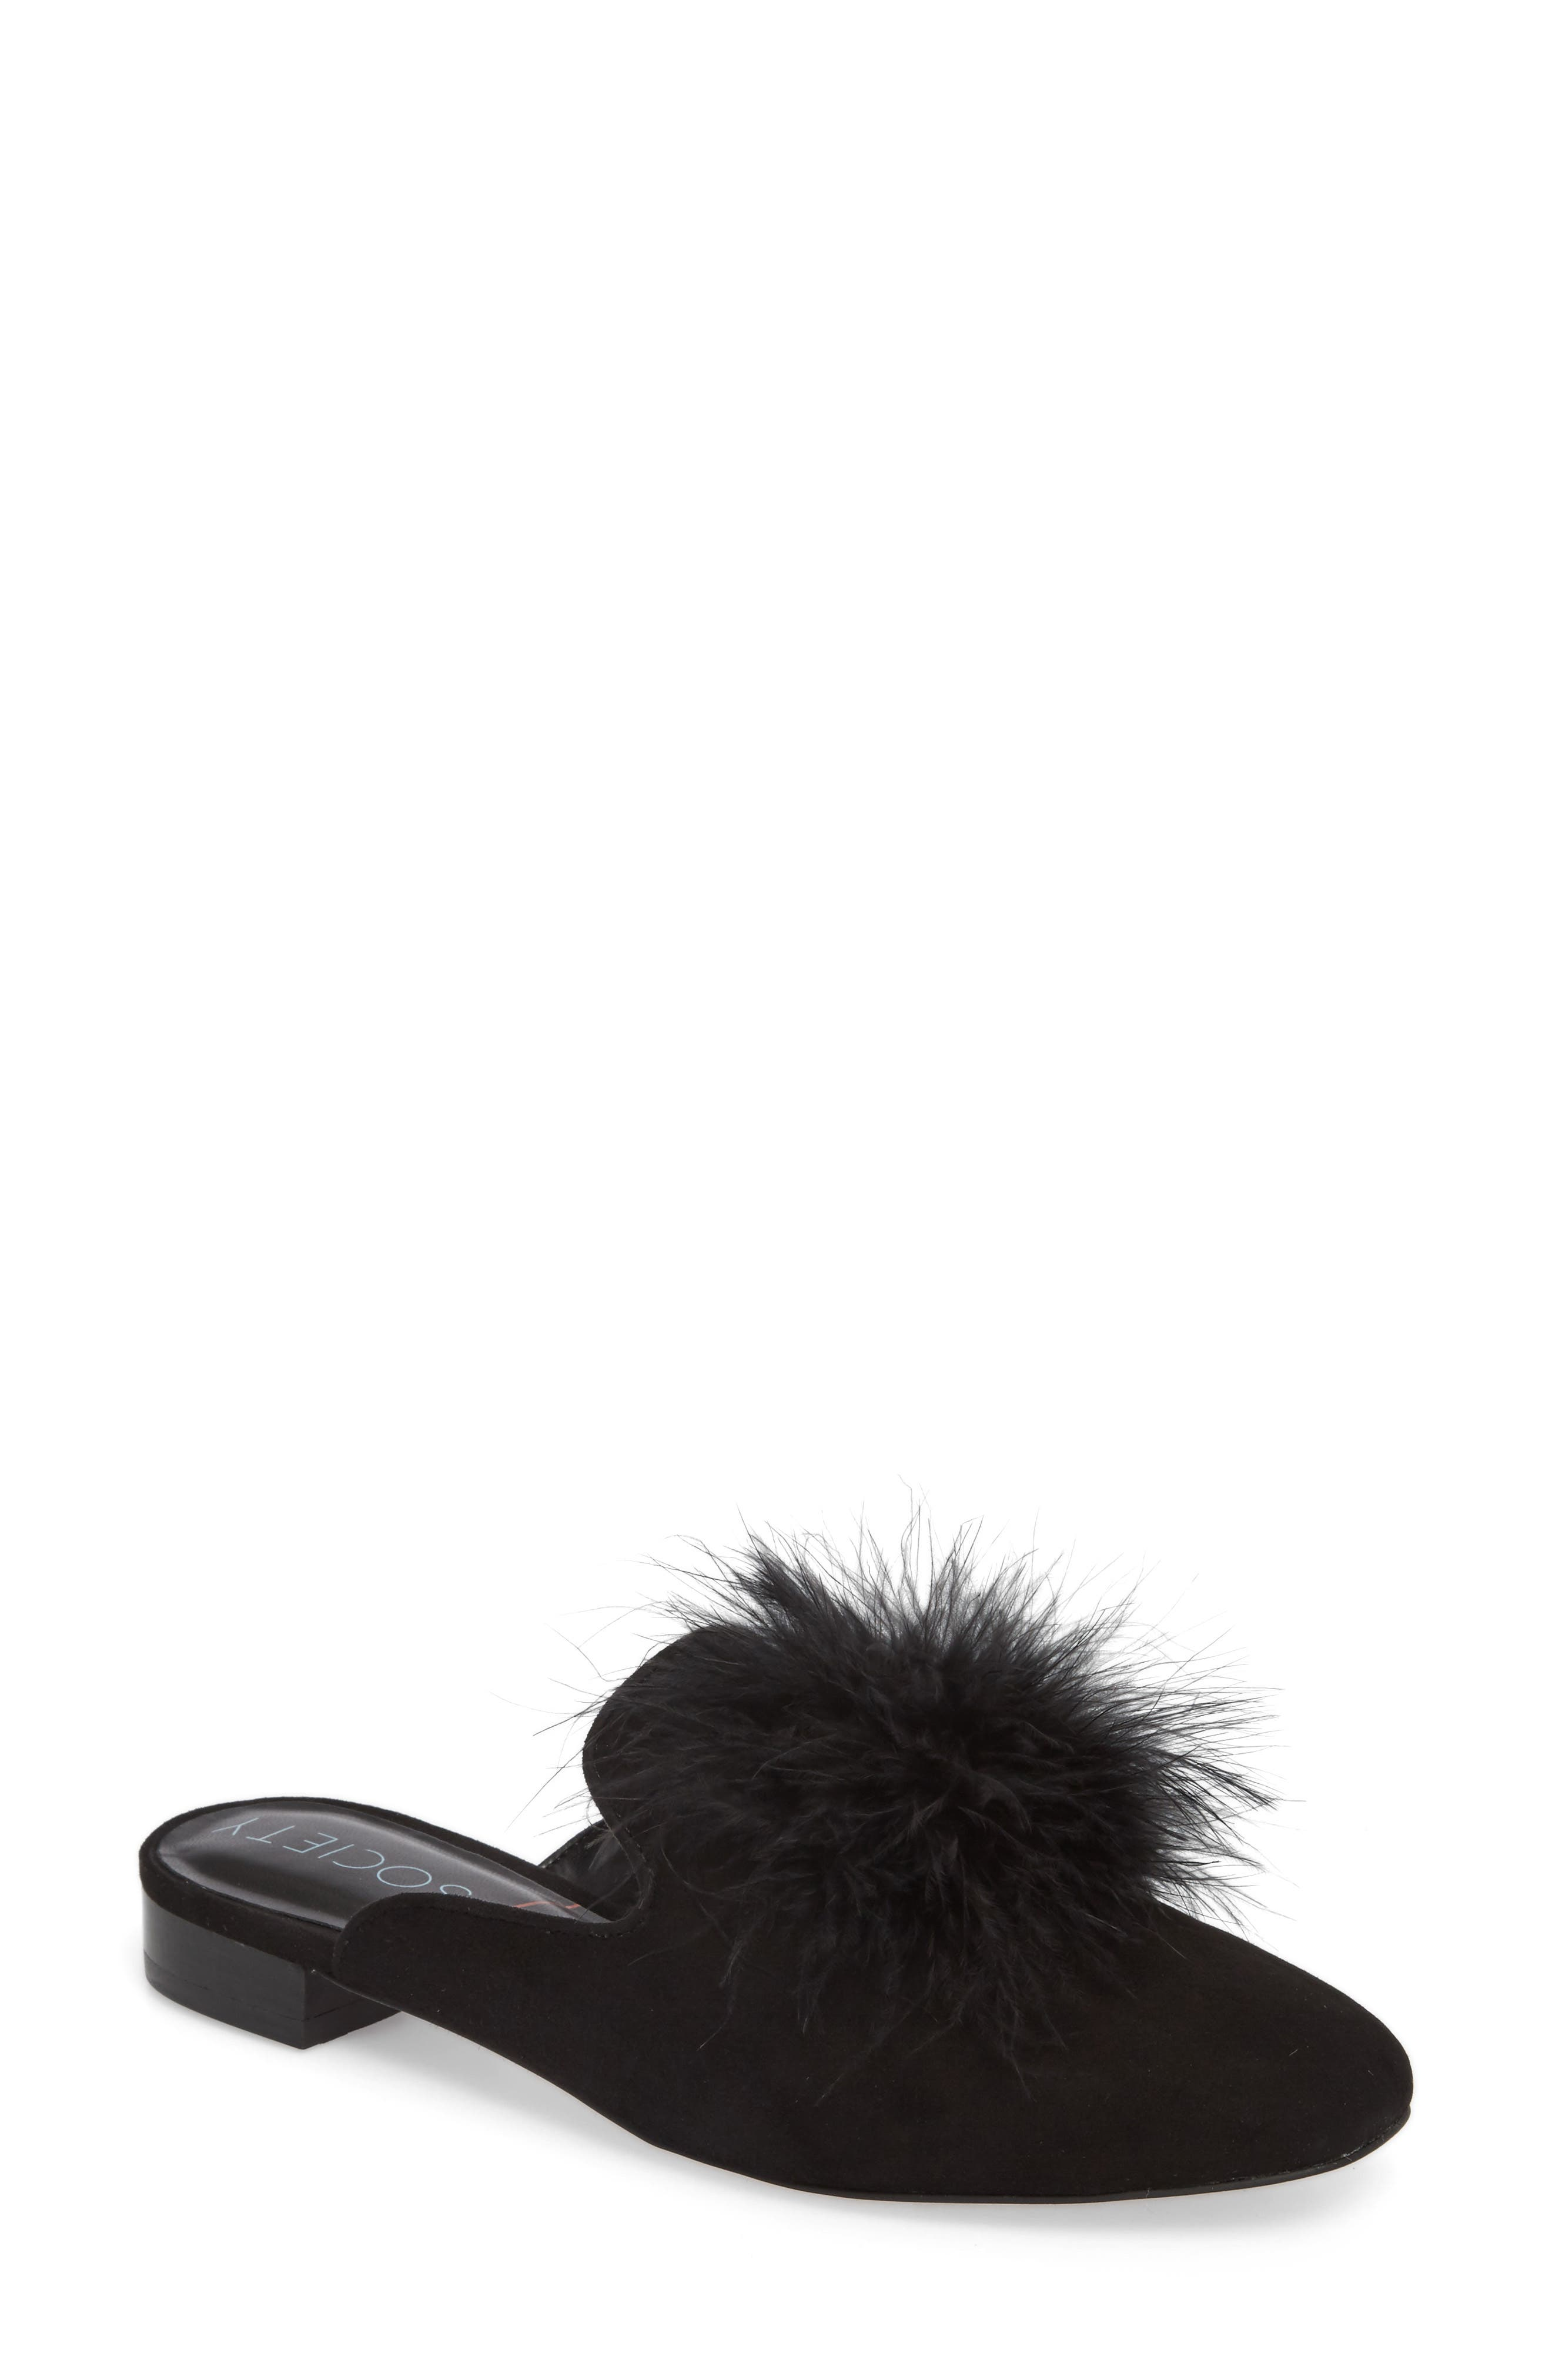 Cleona Feather Pompom Mule,                             Main thumbnail 1, color,                             001